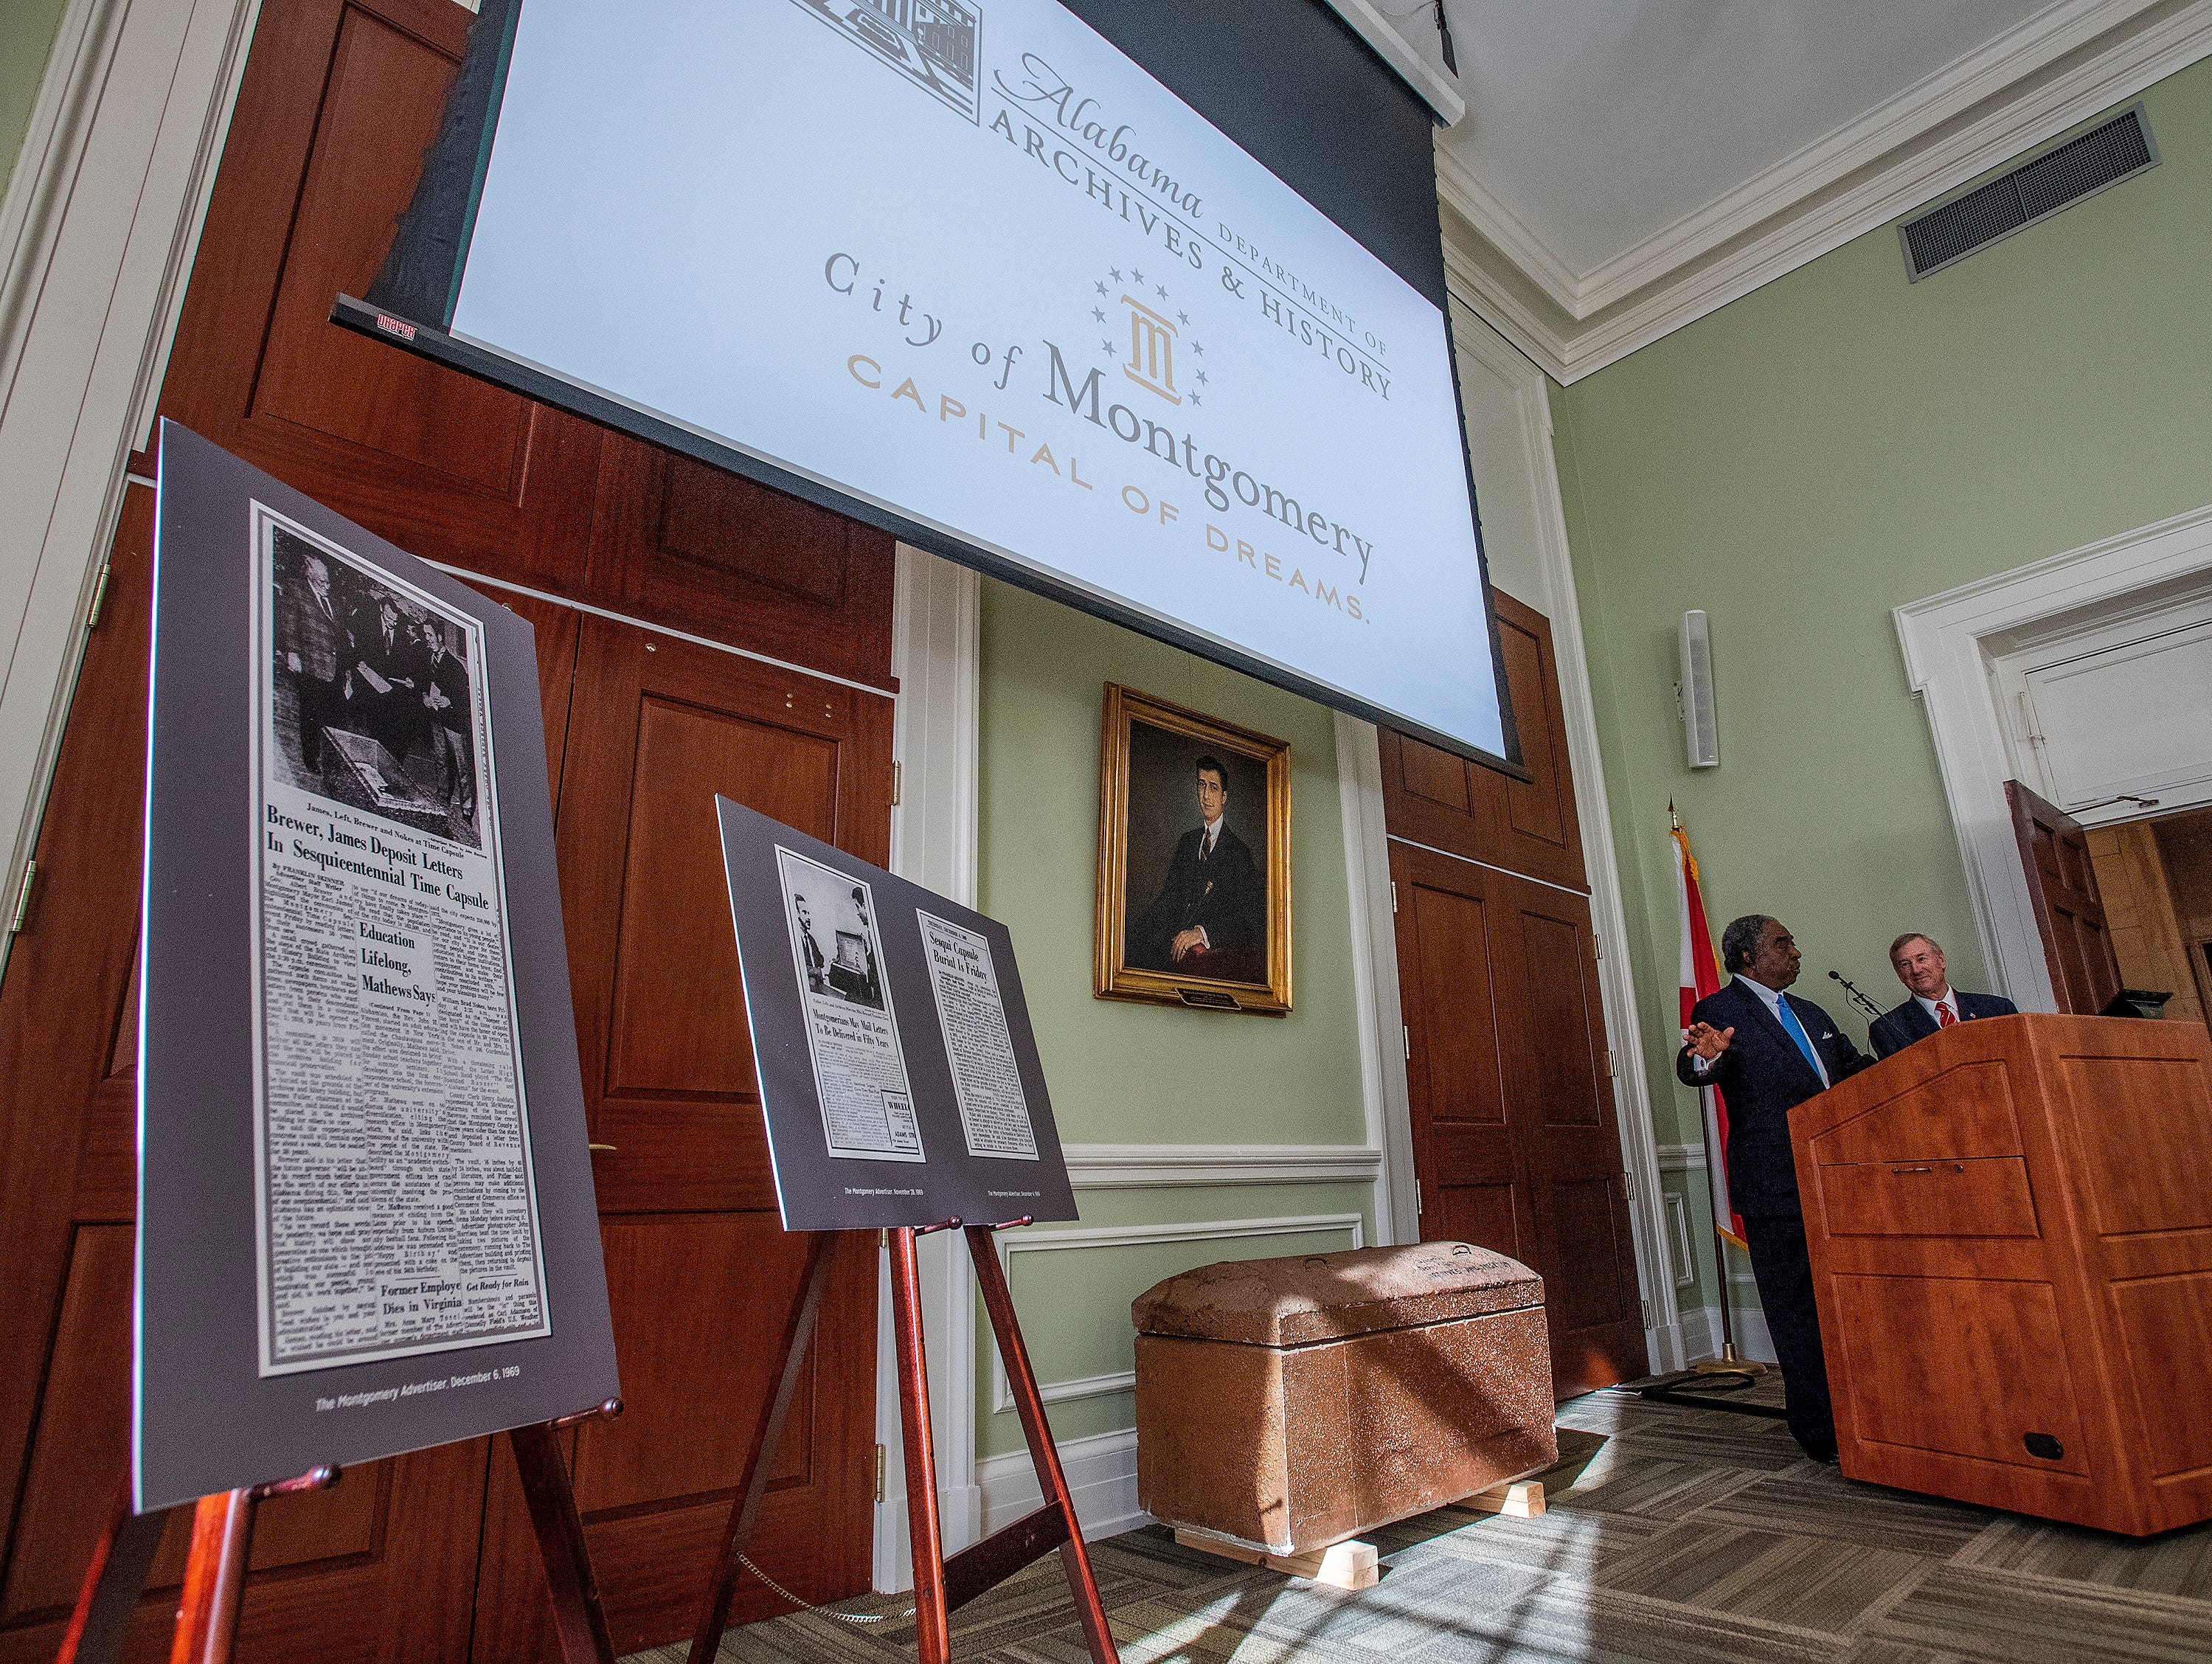 Judge Charles Price, of the Chamber of Commerce, and Mayor Todd Strange speak as the City of Montgomery and the Alabama Department of Archives and History unveiled, during a ceremony at the Archives on Monday December 3, 2018, the 1969 time capsule that will be opened on the 200th anniversary of the incorporation of Montgomery on December 3, 2019.